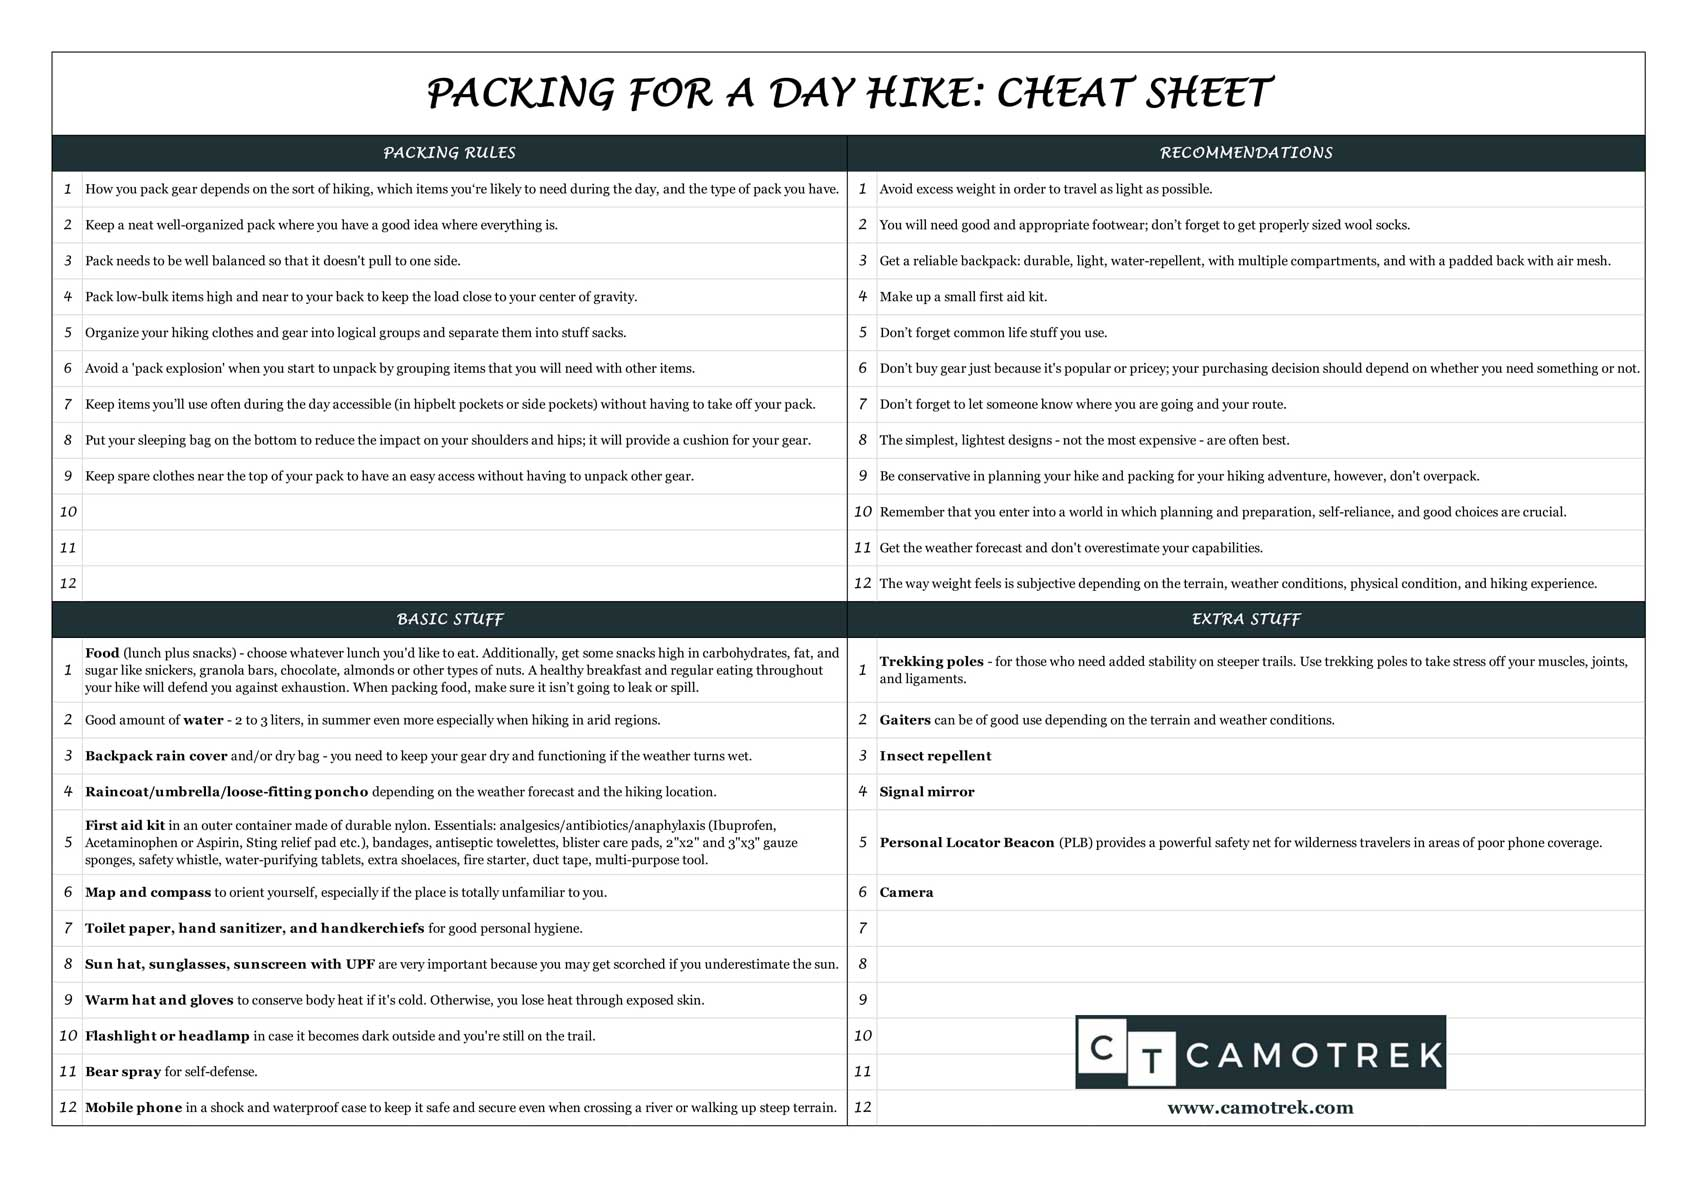 Packing for a day hike cheat sheet